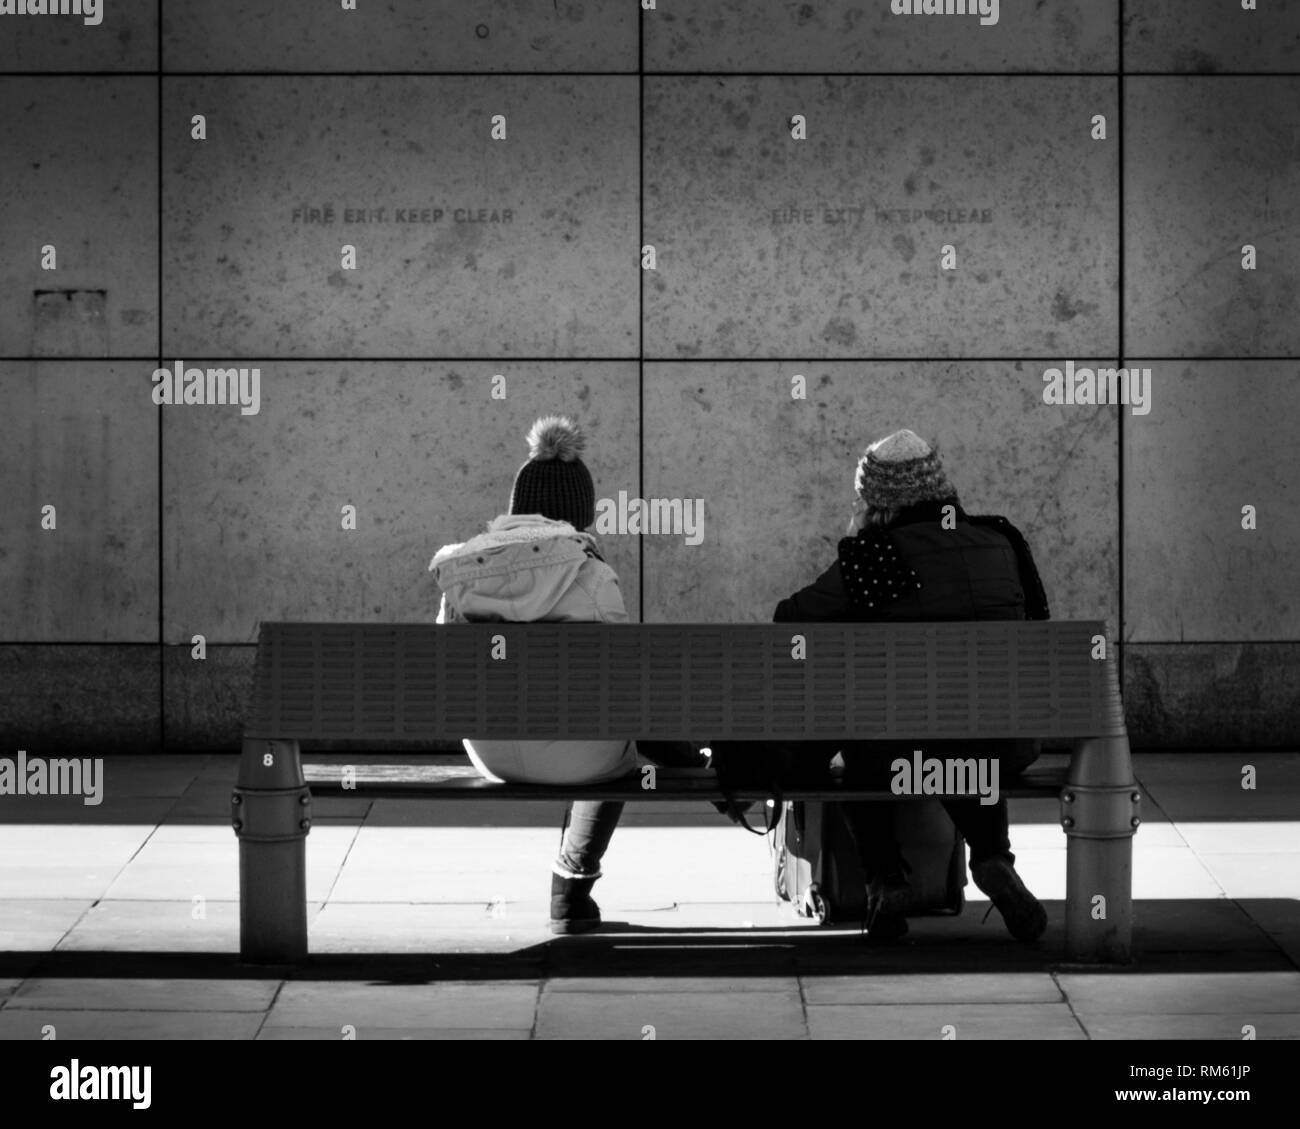 Two Women With Their Backs To Camera Sit On A Bench In Manchester Wearing Winter Clothing And Facing A Walll Stock Photo Alamy